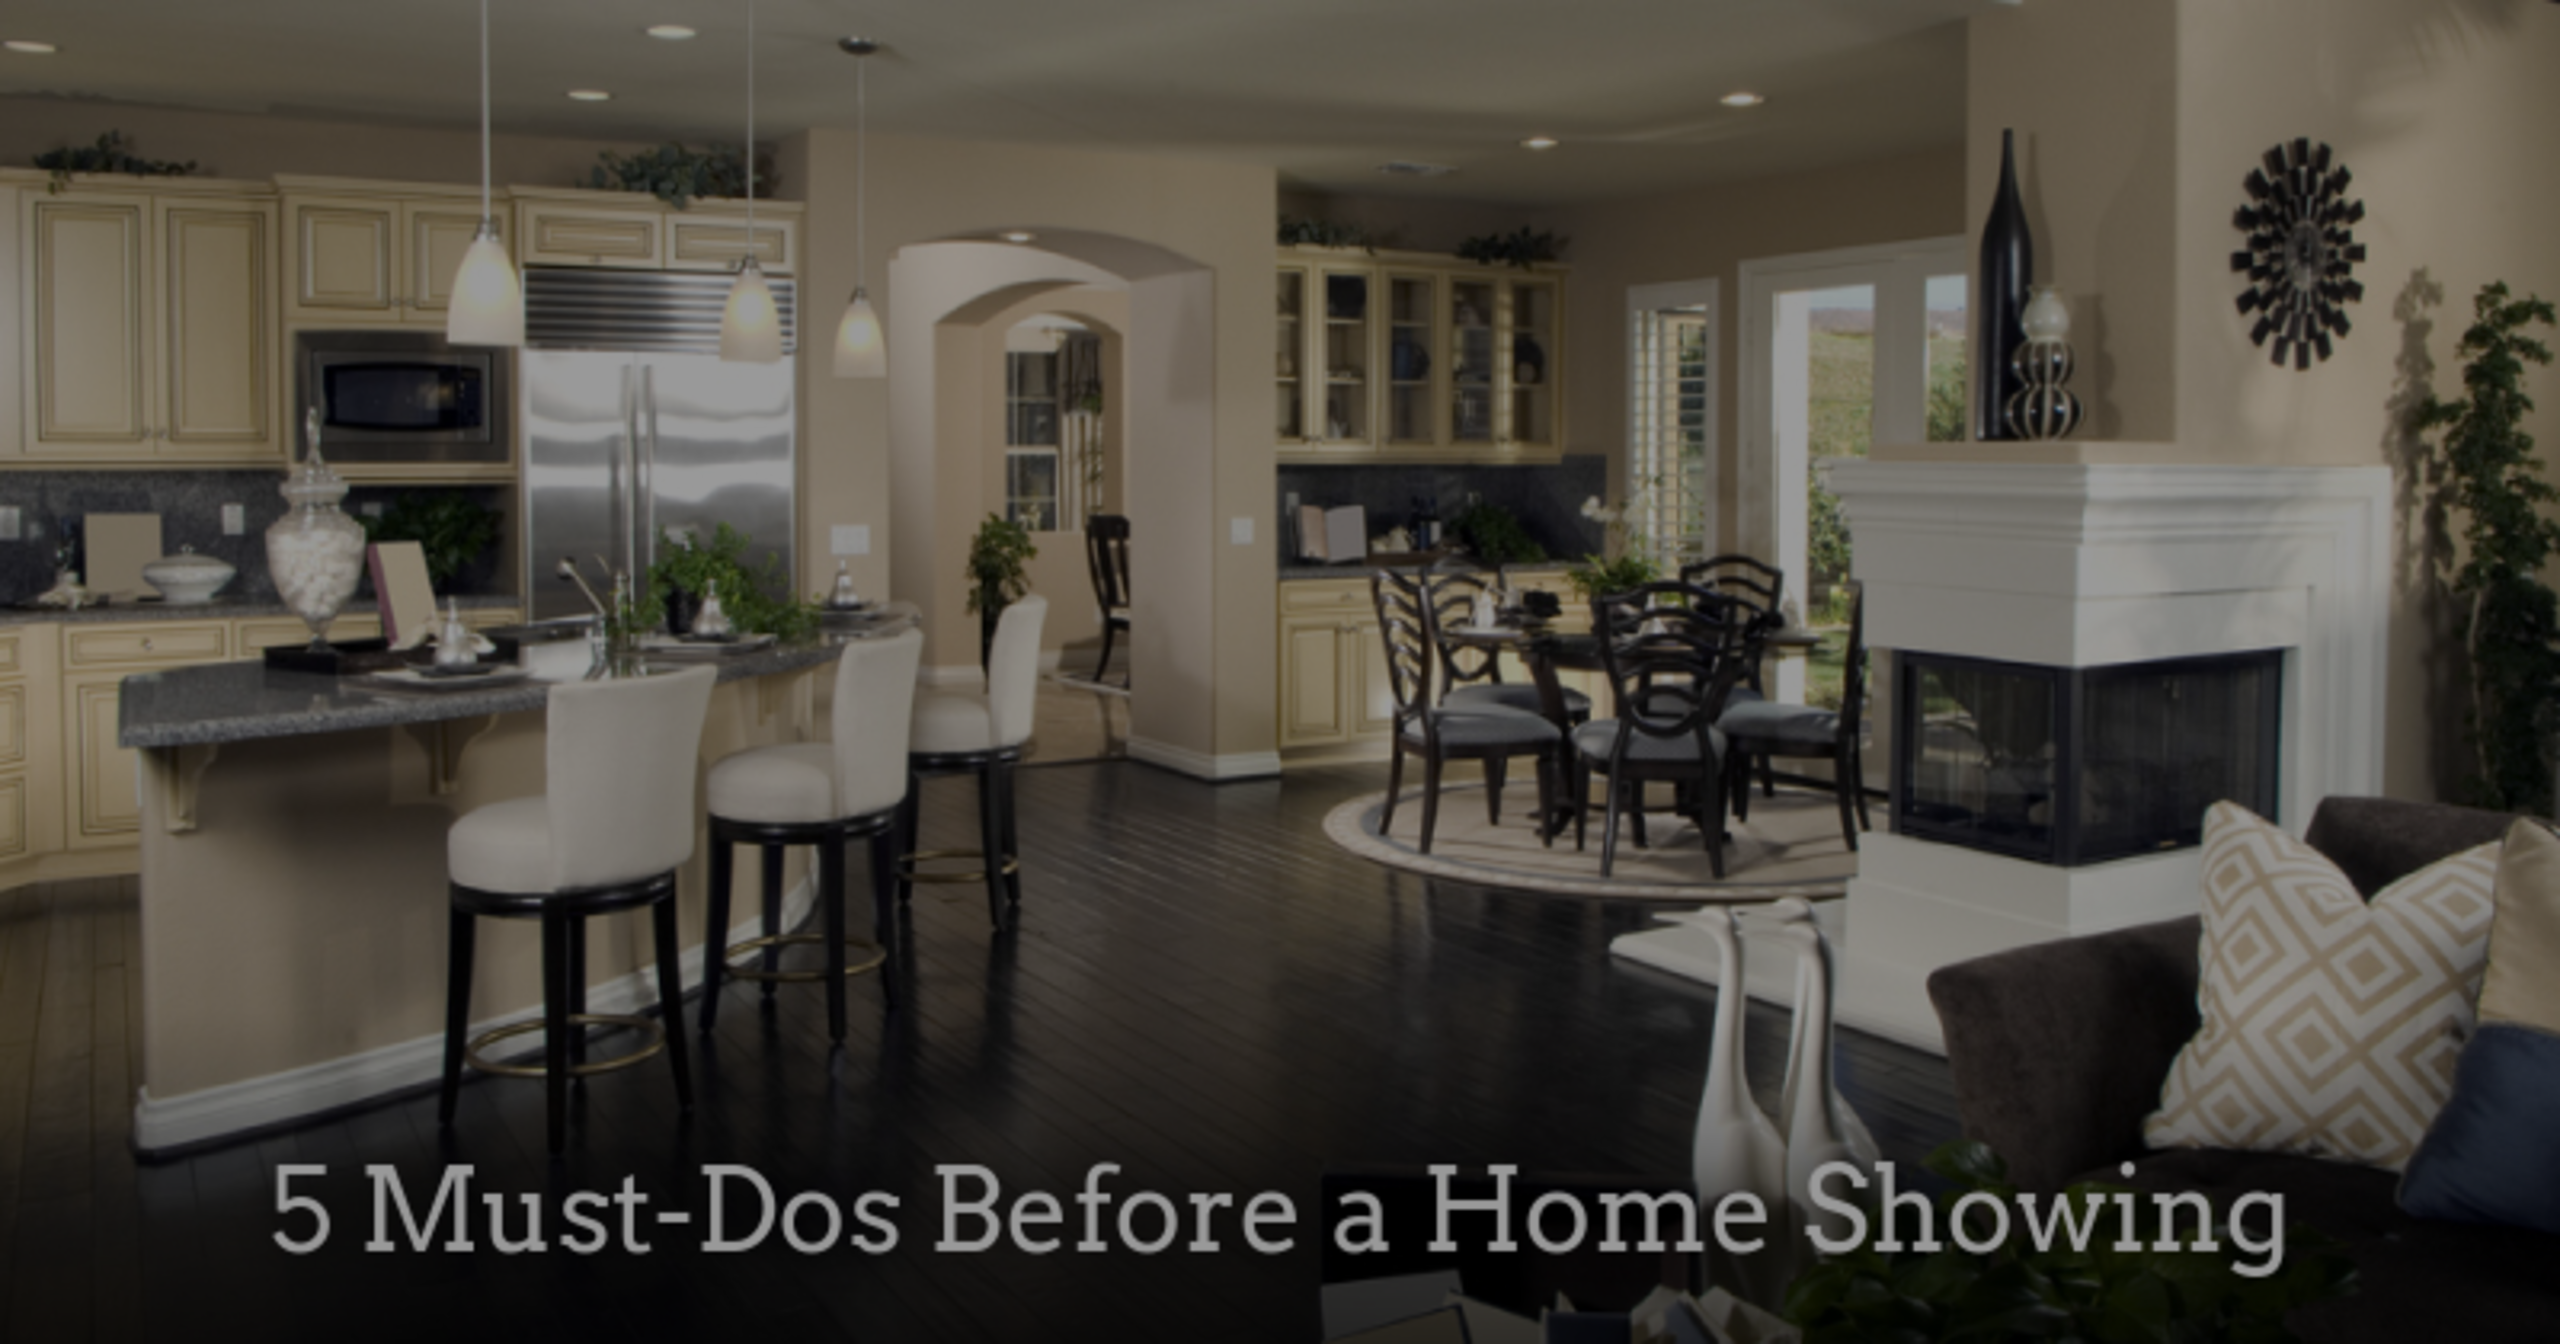 5 Must-Dos Before a Home Showing